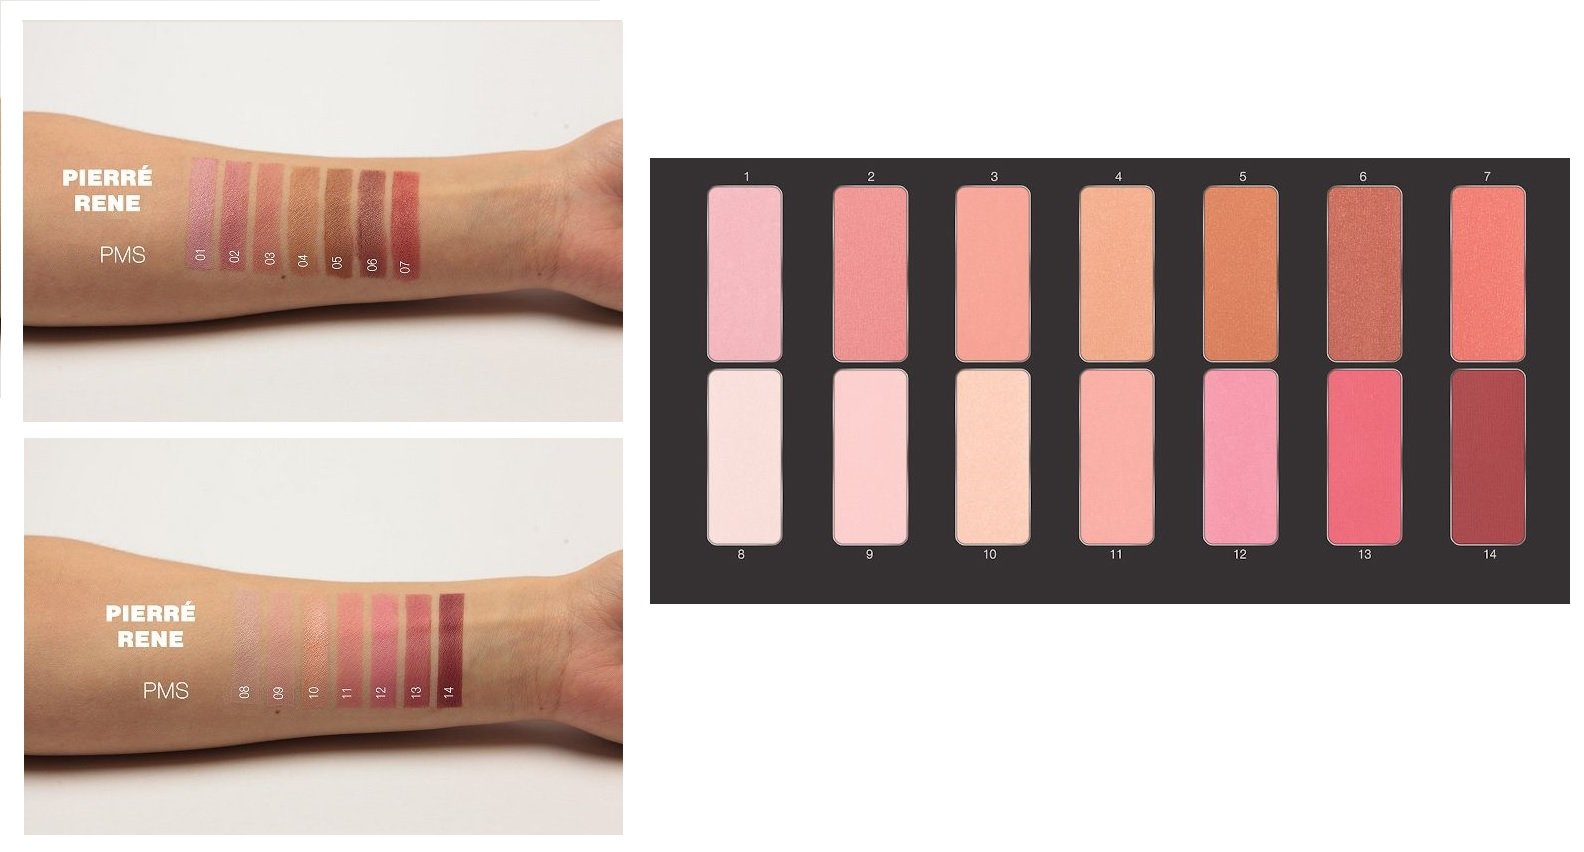 Pierre Rene Professional Make-Up - Complete Luxury Blush Palette 14 high pigmented matte and shimmery blushes